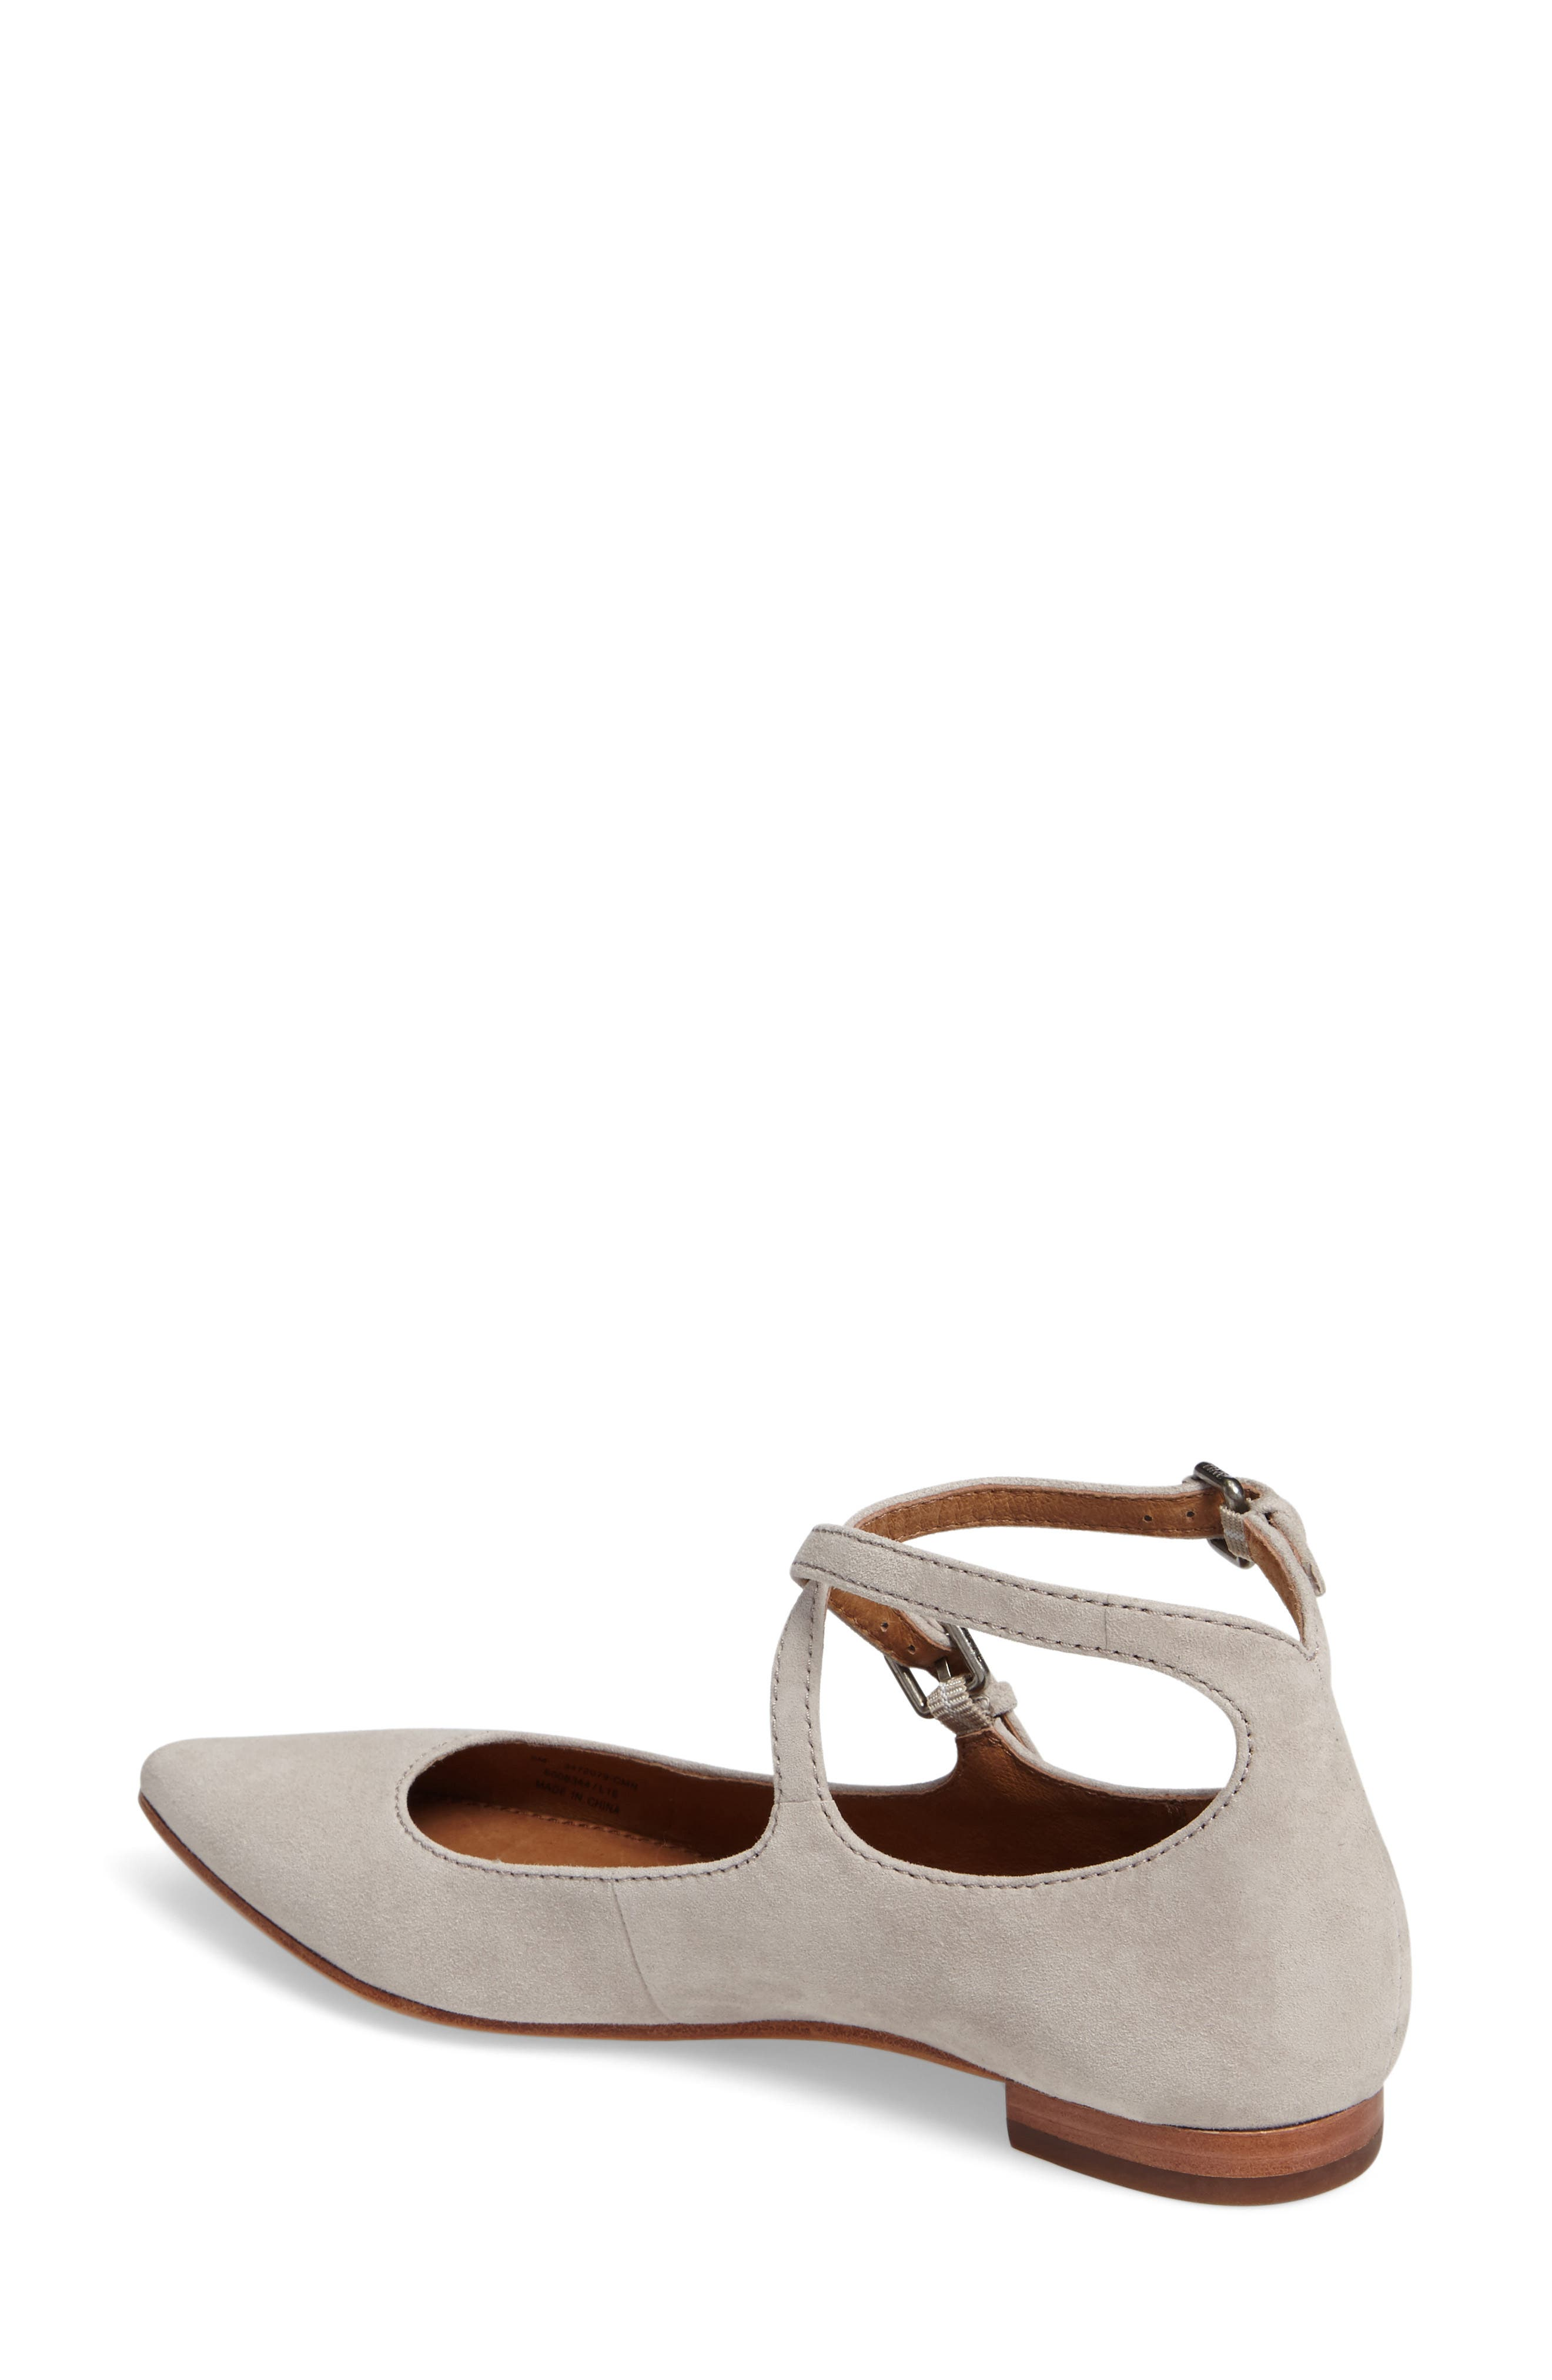 Sienna Cross Ballet Flat,                             Alternate thumbnail 5, color,